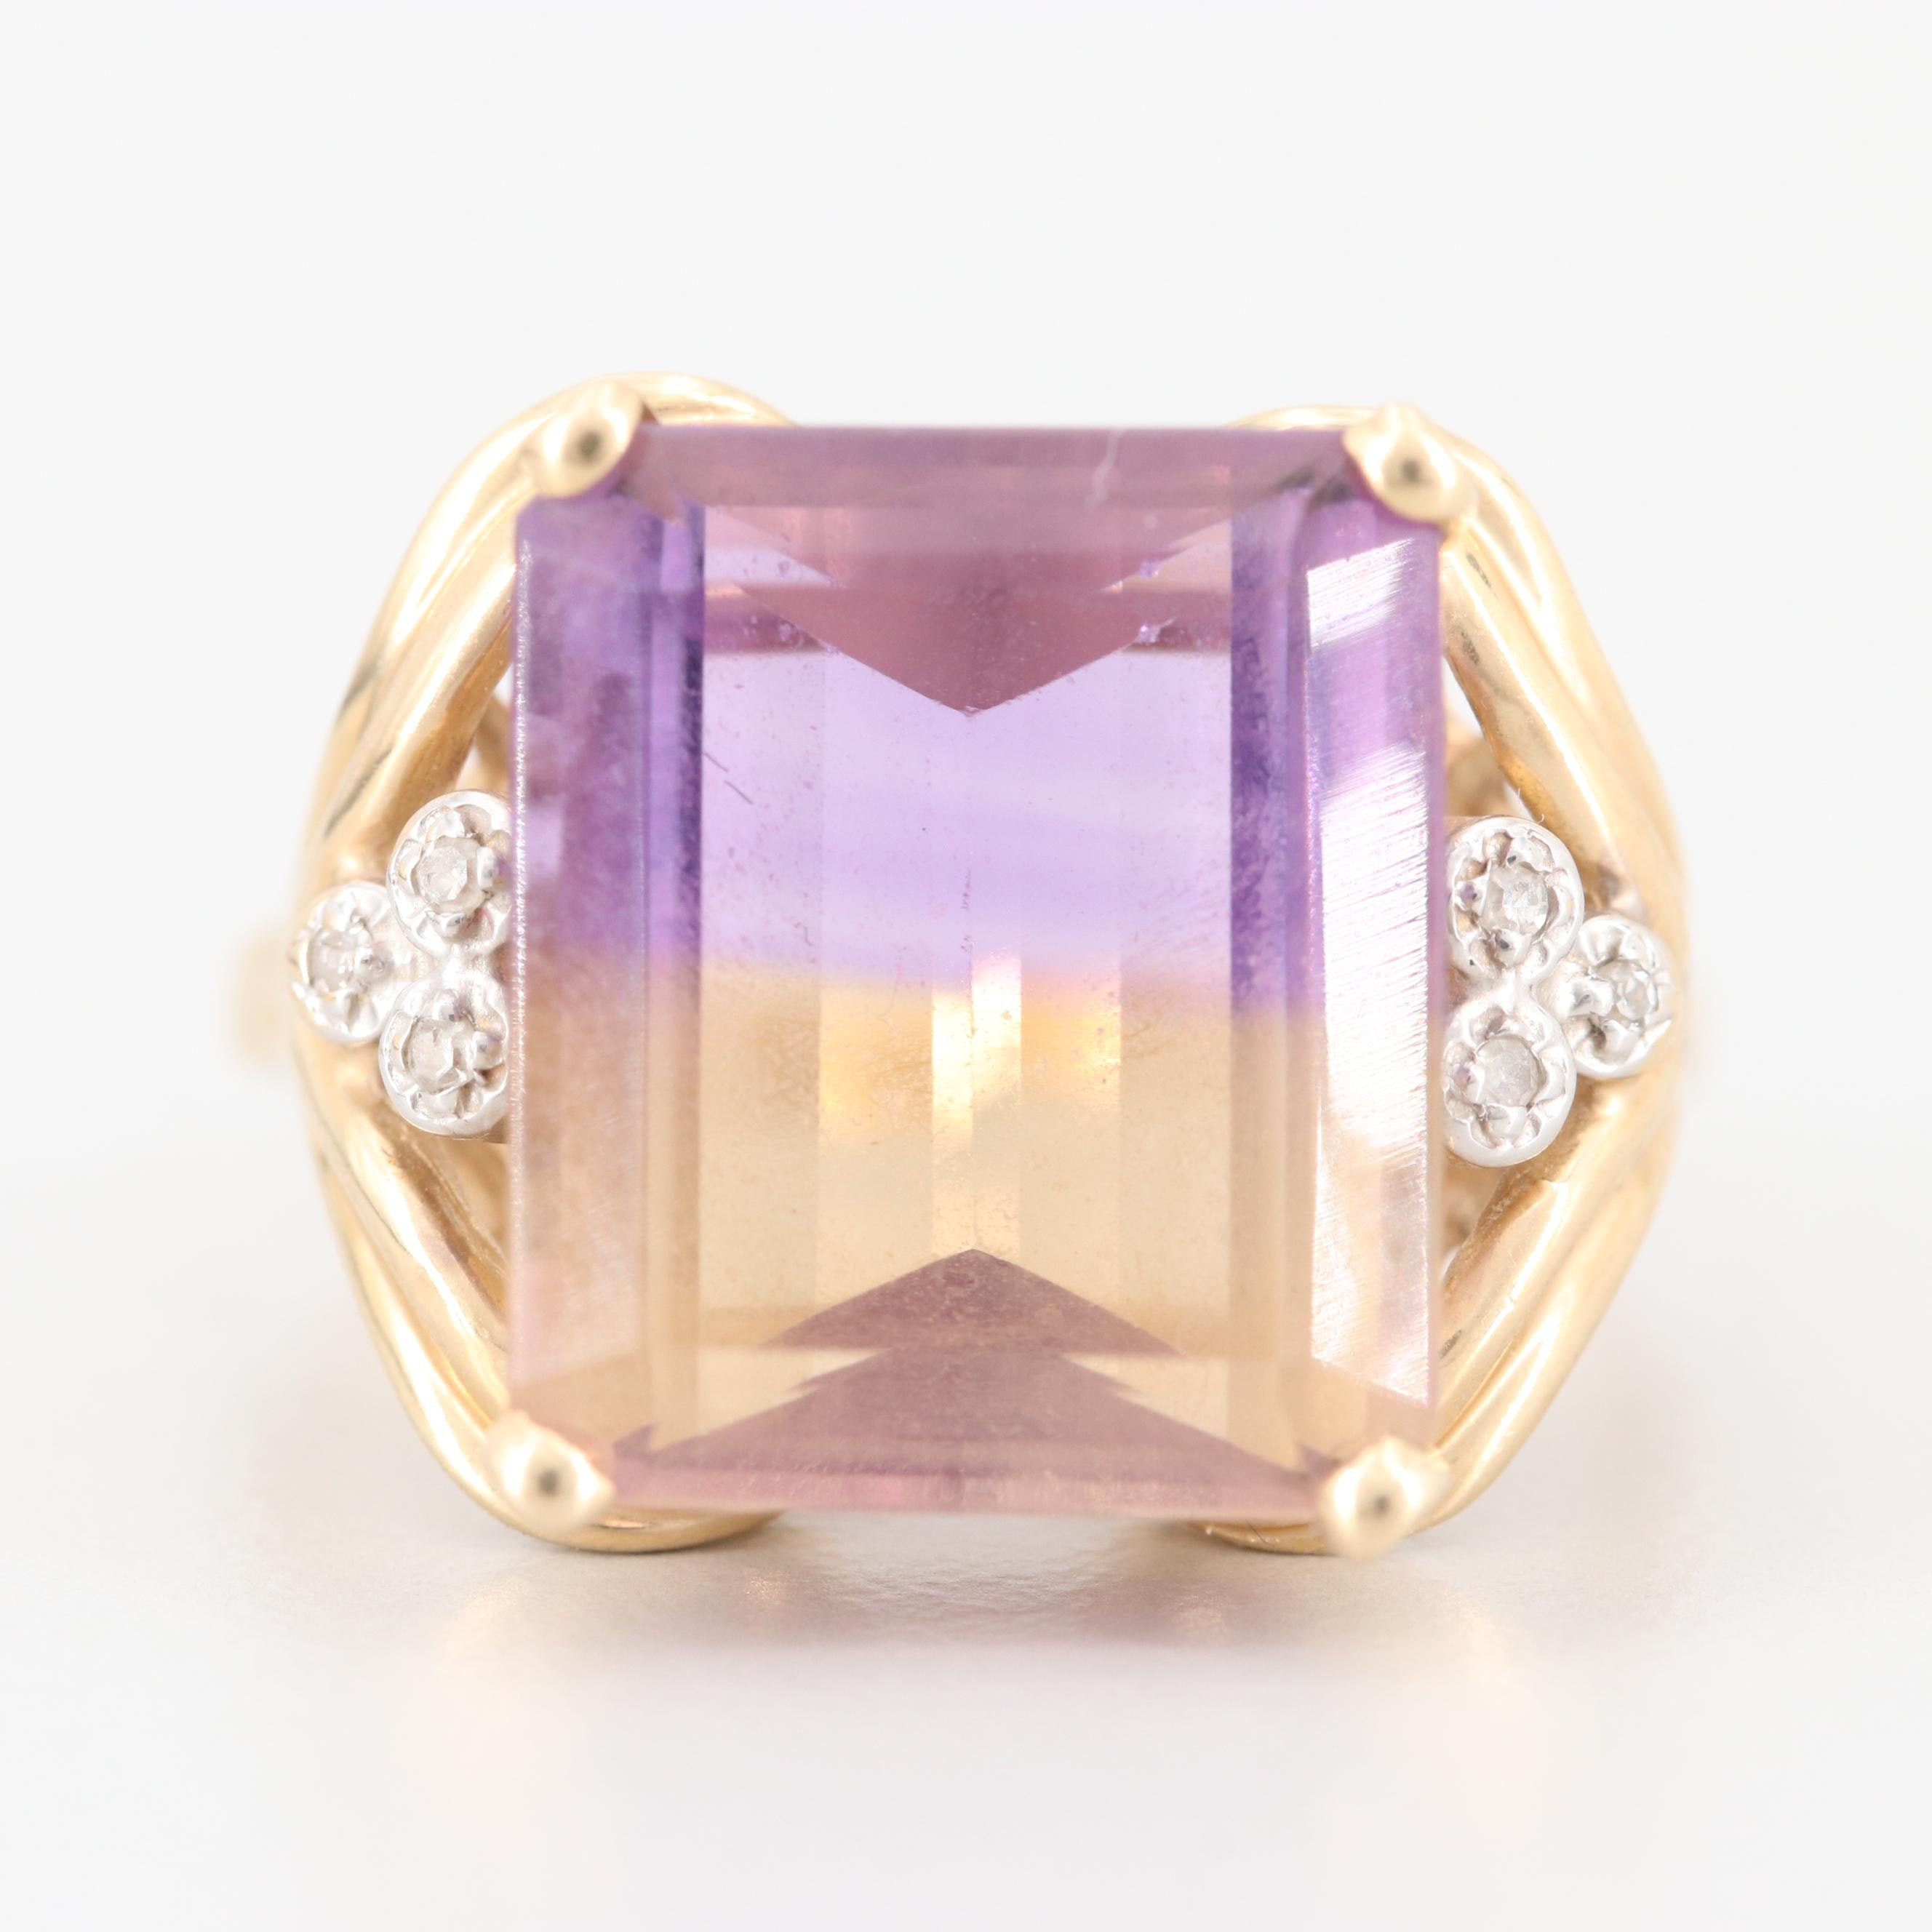 14K Yellow Gold 8.85 CT Ametrine and Diamond Ring